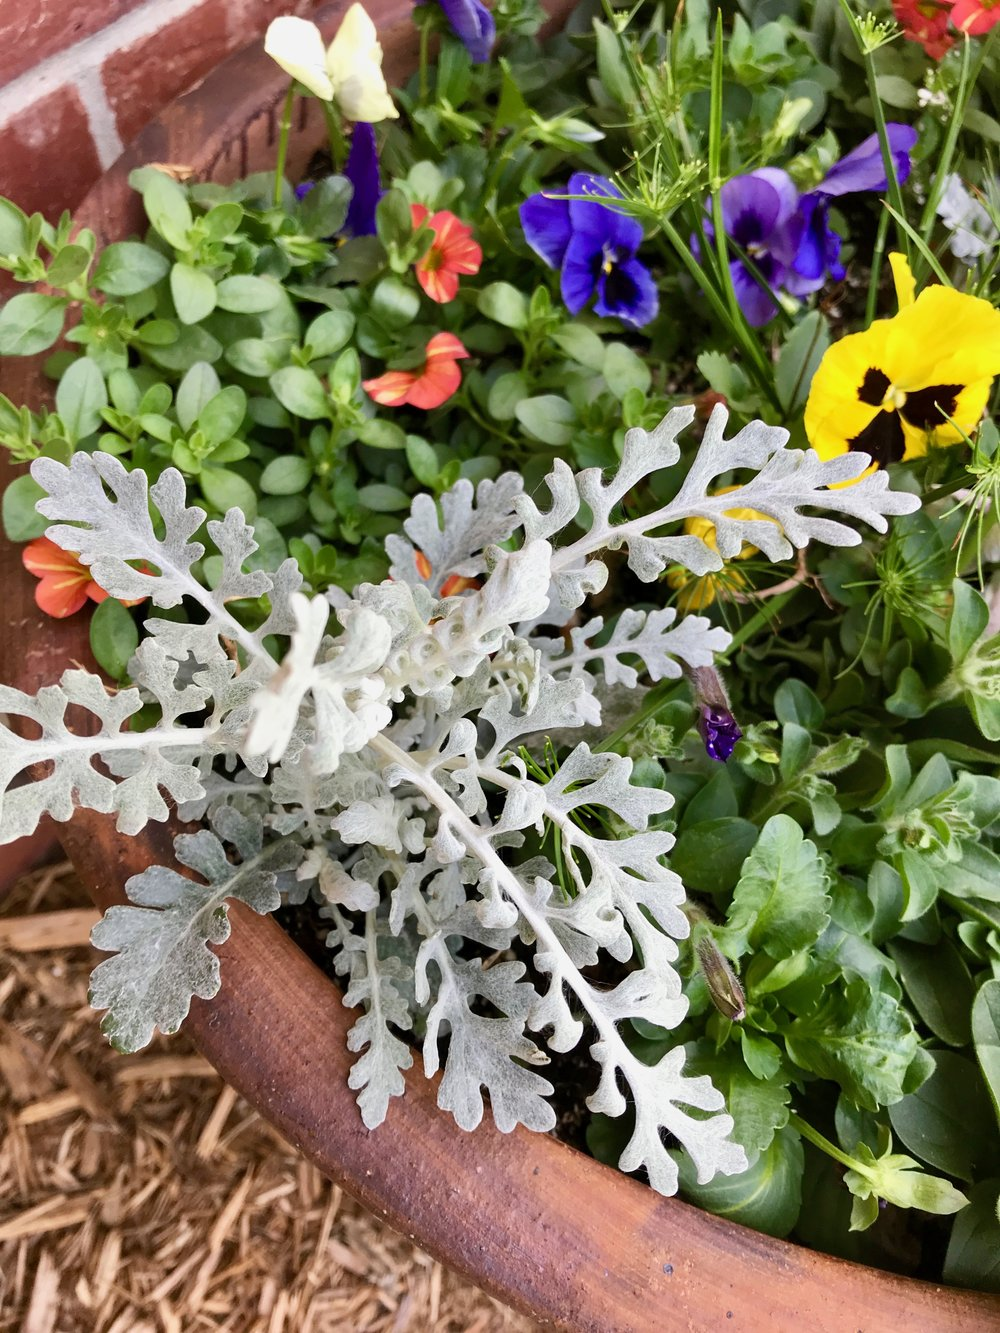 Dusty Miller- who doesn't love pale gray fuzzy foliage?